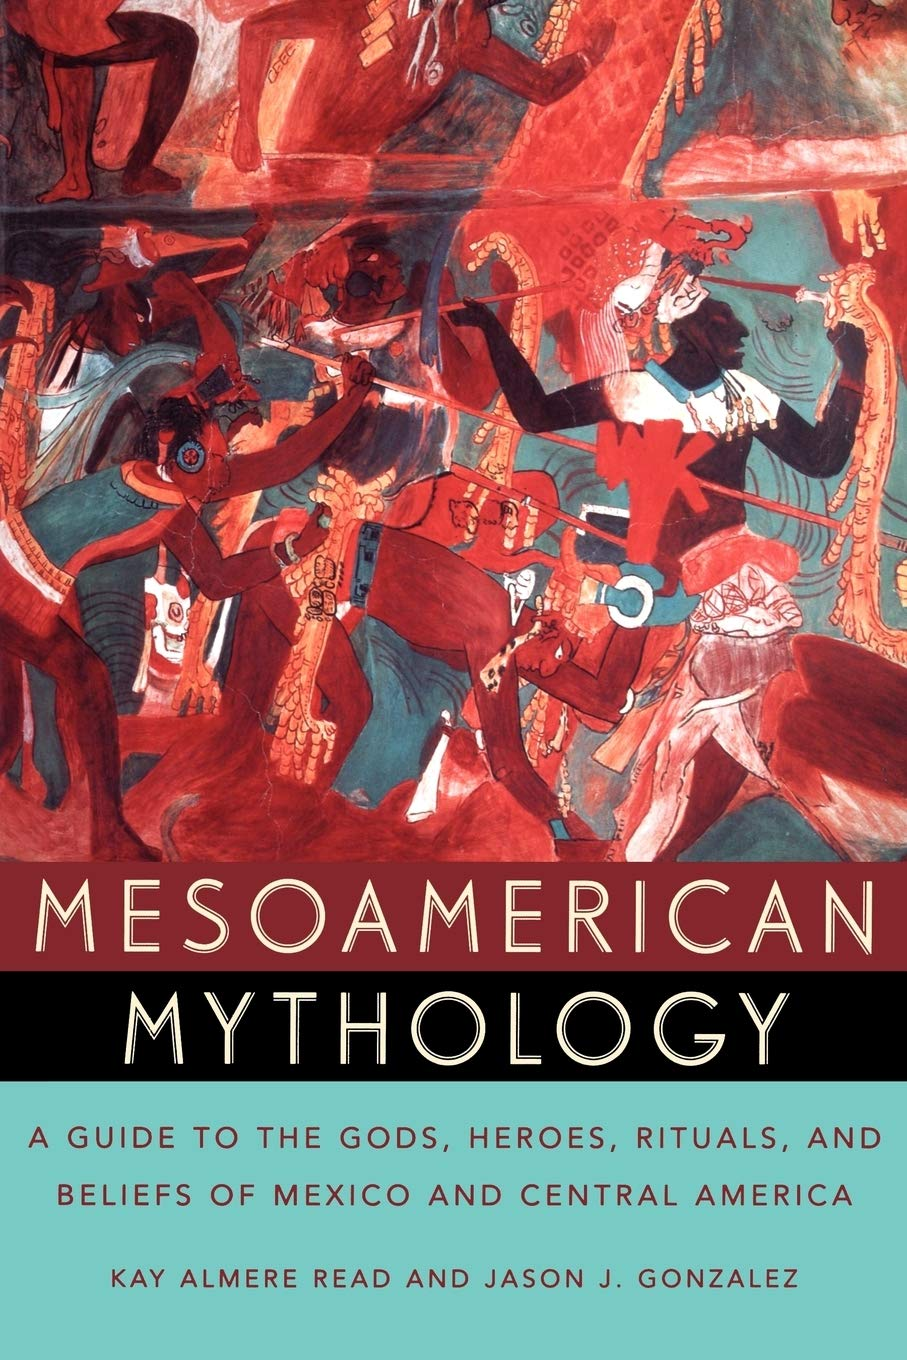 Image OfMesoamerican Mythology: A Guide To The Gods, Heroes, Rituals And Beliefs Of Mexico And Central America